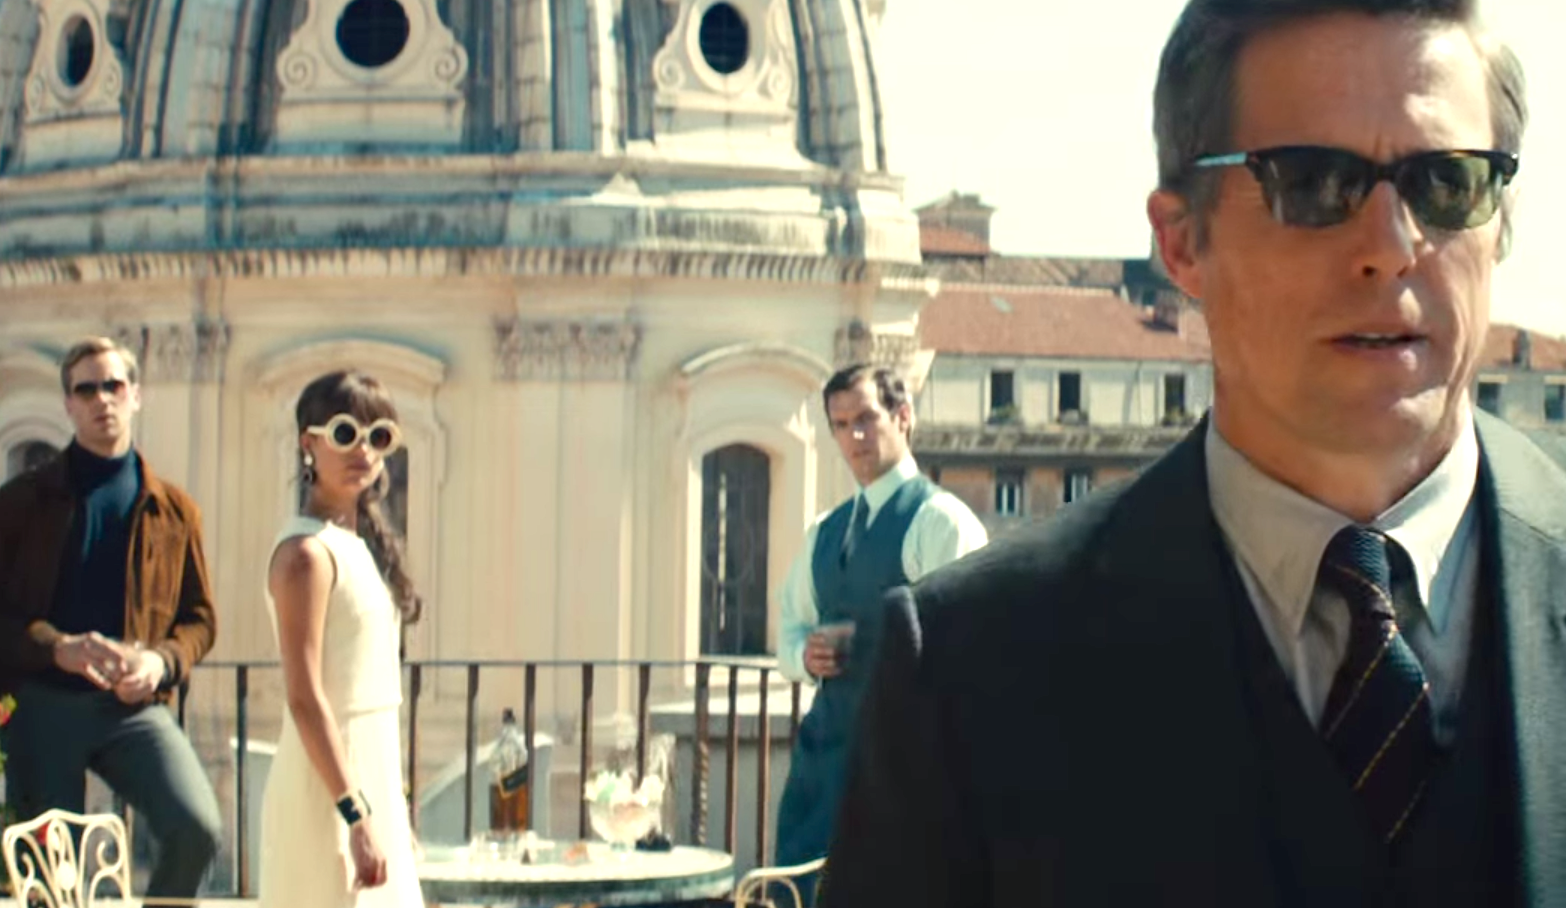 The Man From U N C L E 2015 New Intriguing Spy Movie From Guy Ritchie The Movie My Life